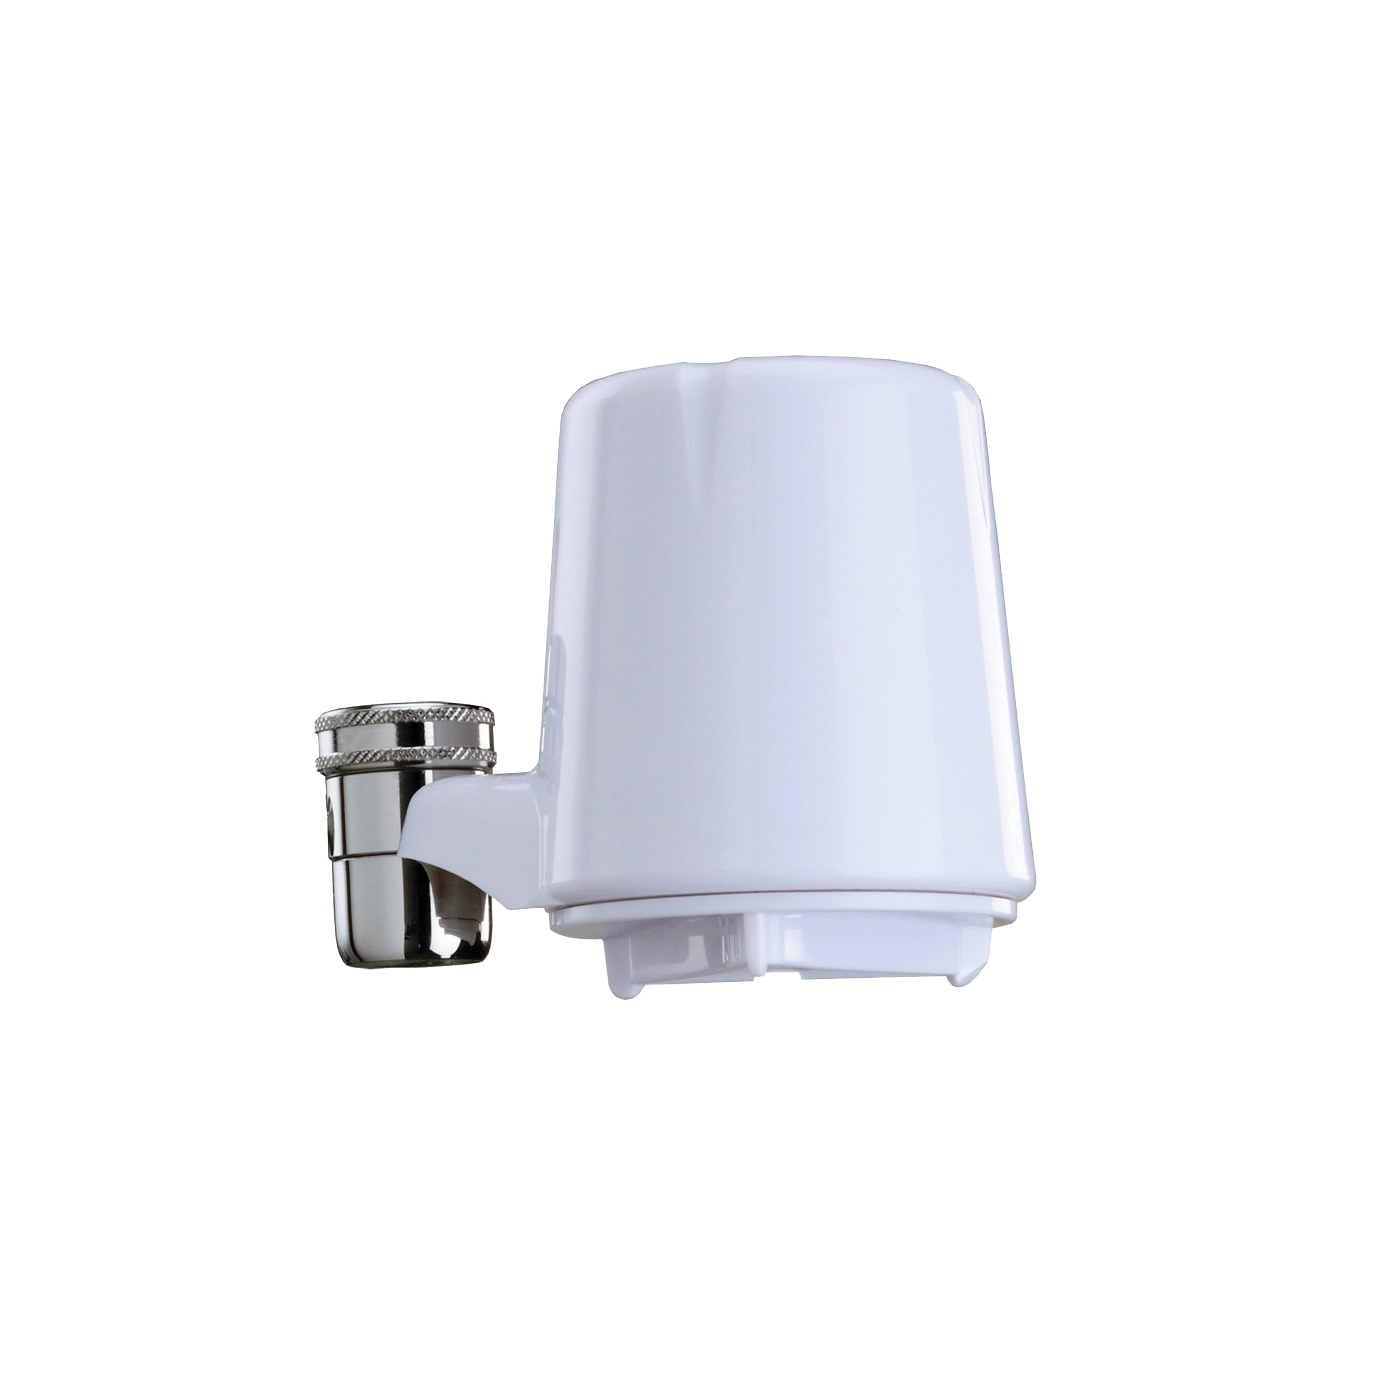 Picture of Culligan FM-15A Water Filter, 200 gal Capacity, 0.6 gpm